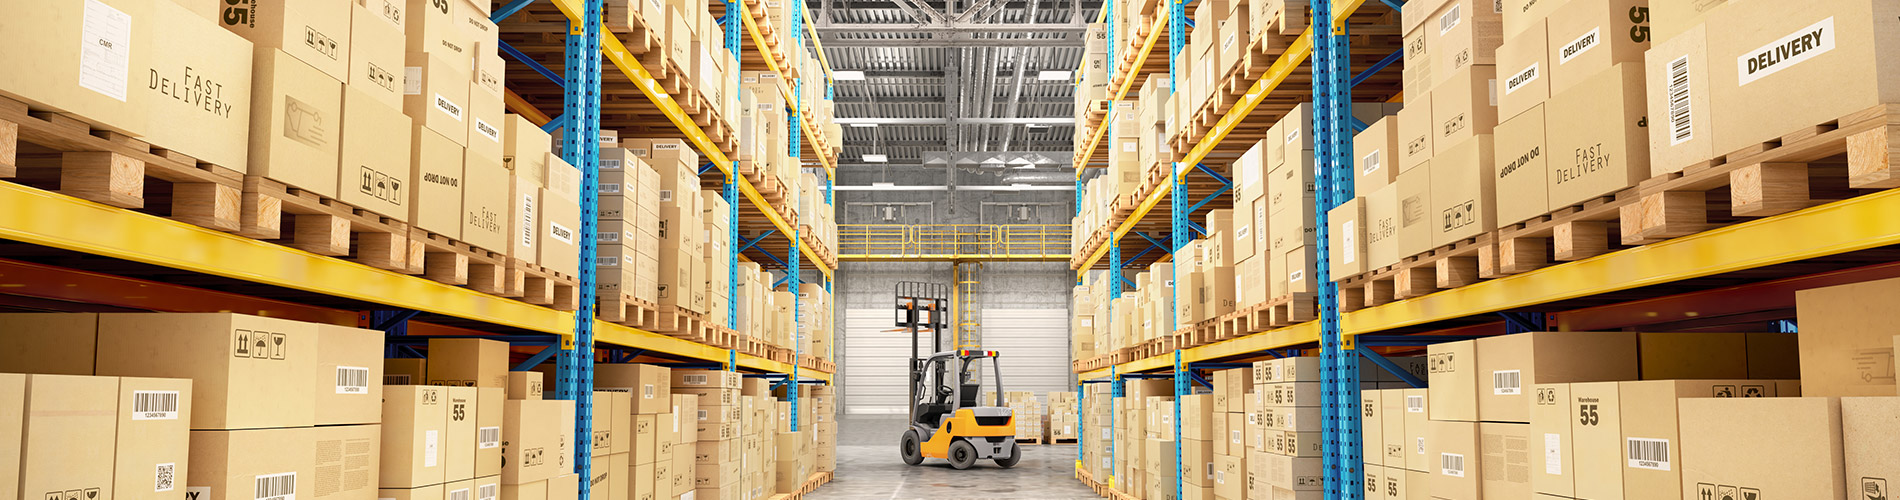 label-products-stock-labels-shipping-labels-boxes-racks-forklift-dls